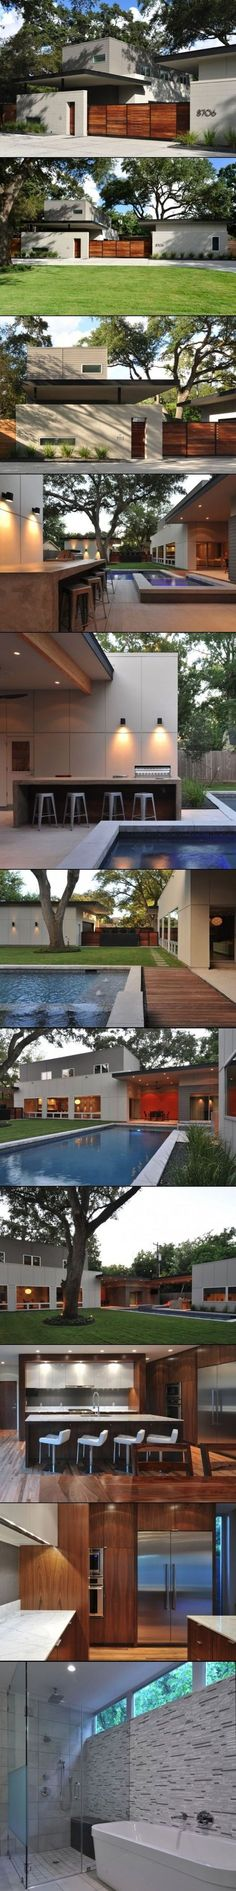 Spring Valley House by StudioMET Houston-based Architectural firm StudioMET has designed the Spring Valley House project . As its name suggests, this two story home is located in Spring Valley Village, an enclave of Houston in Texas, USA.: